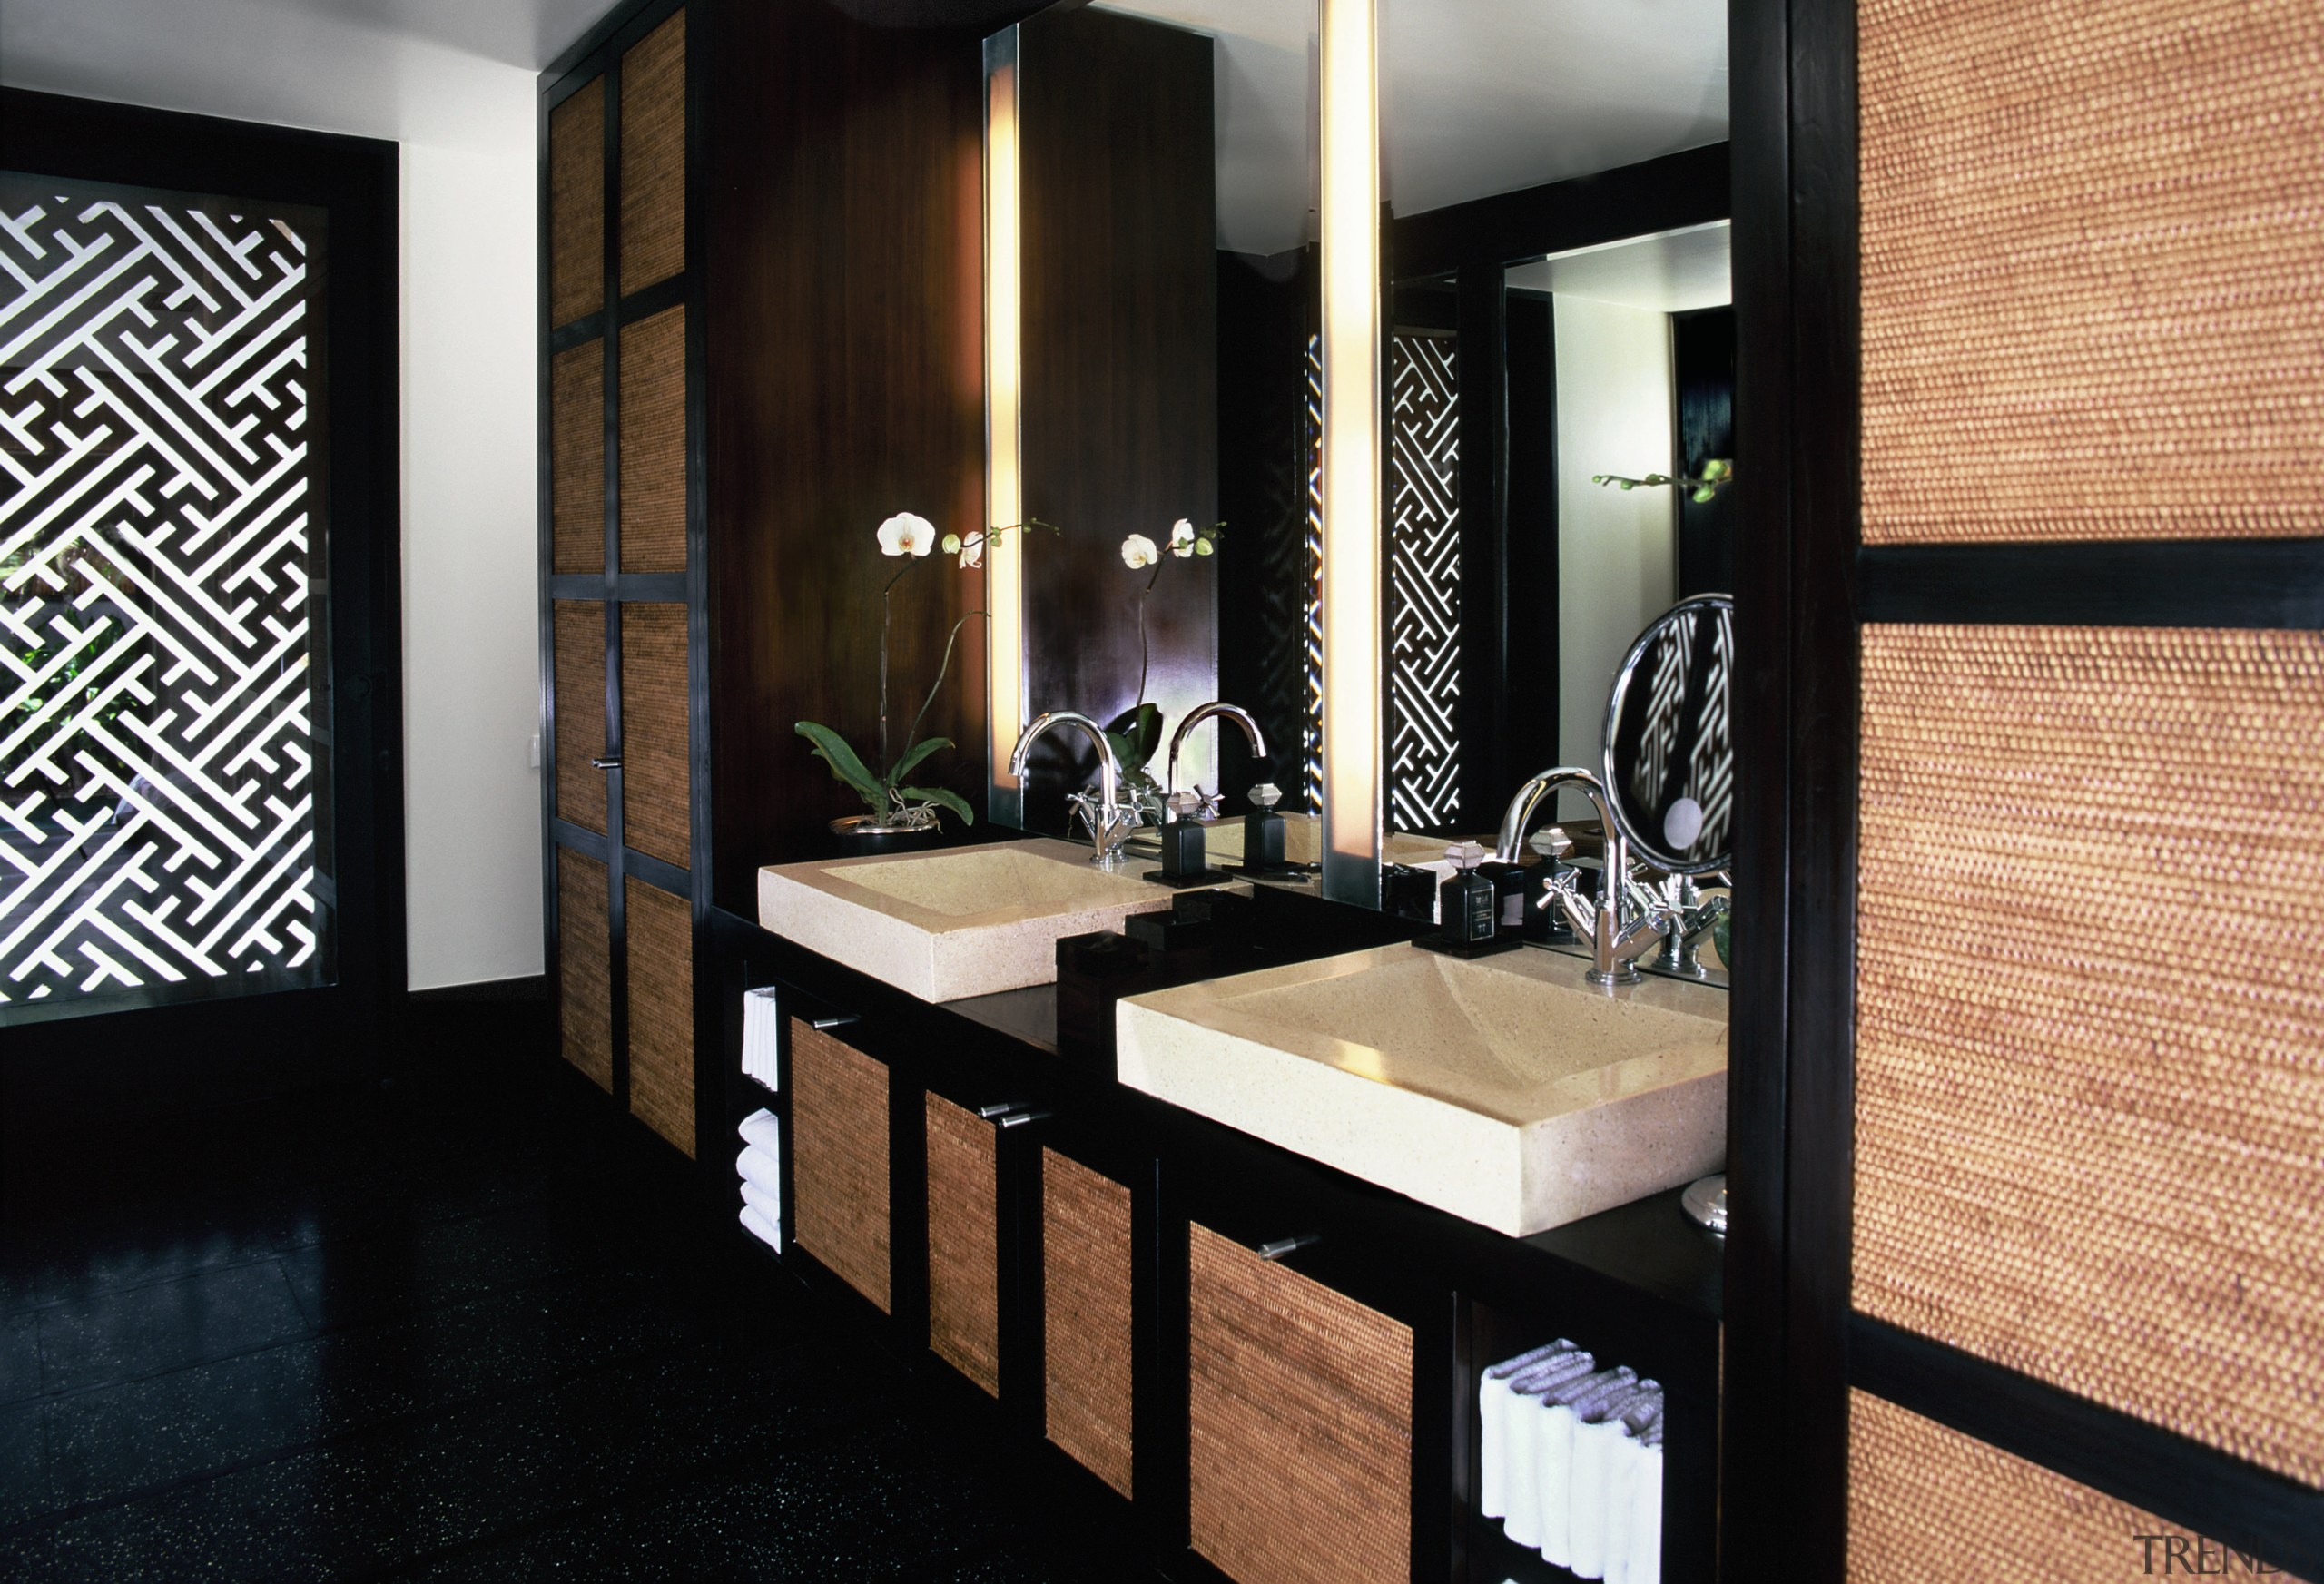 view of the sleek white apaiser stone/terrazzo basins flooring, interior design, room, suite, black